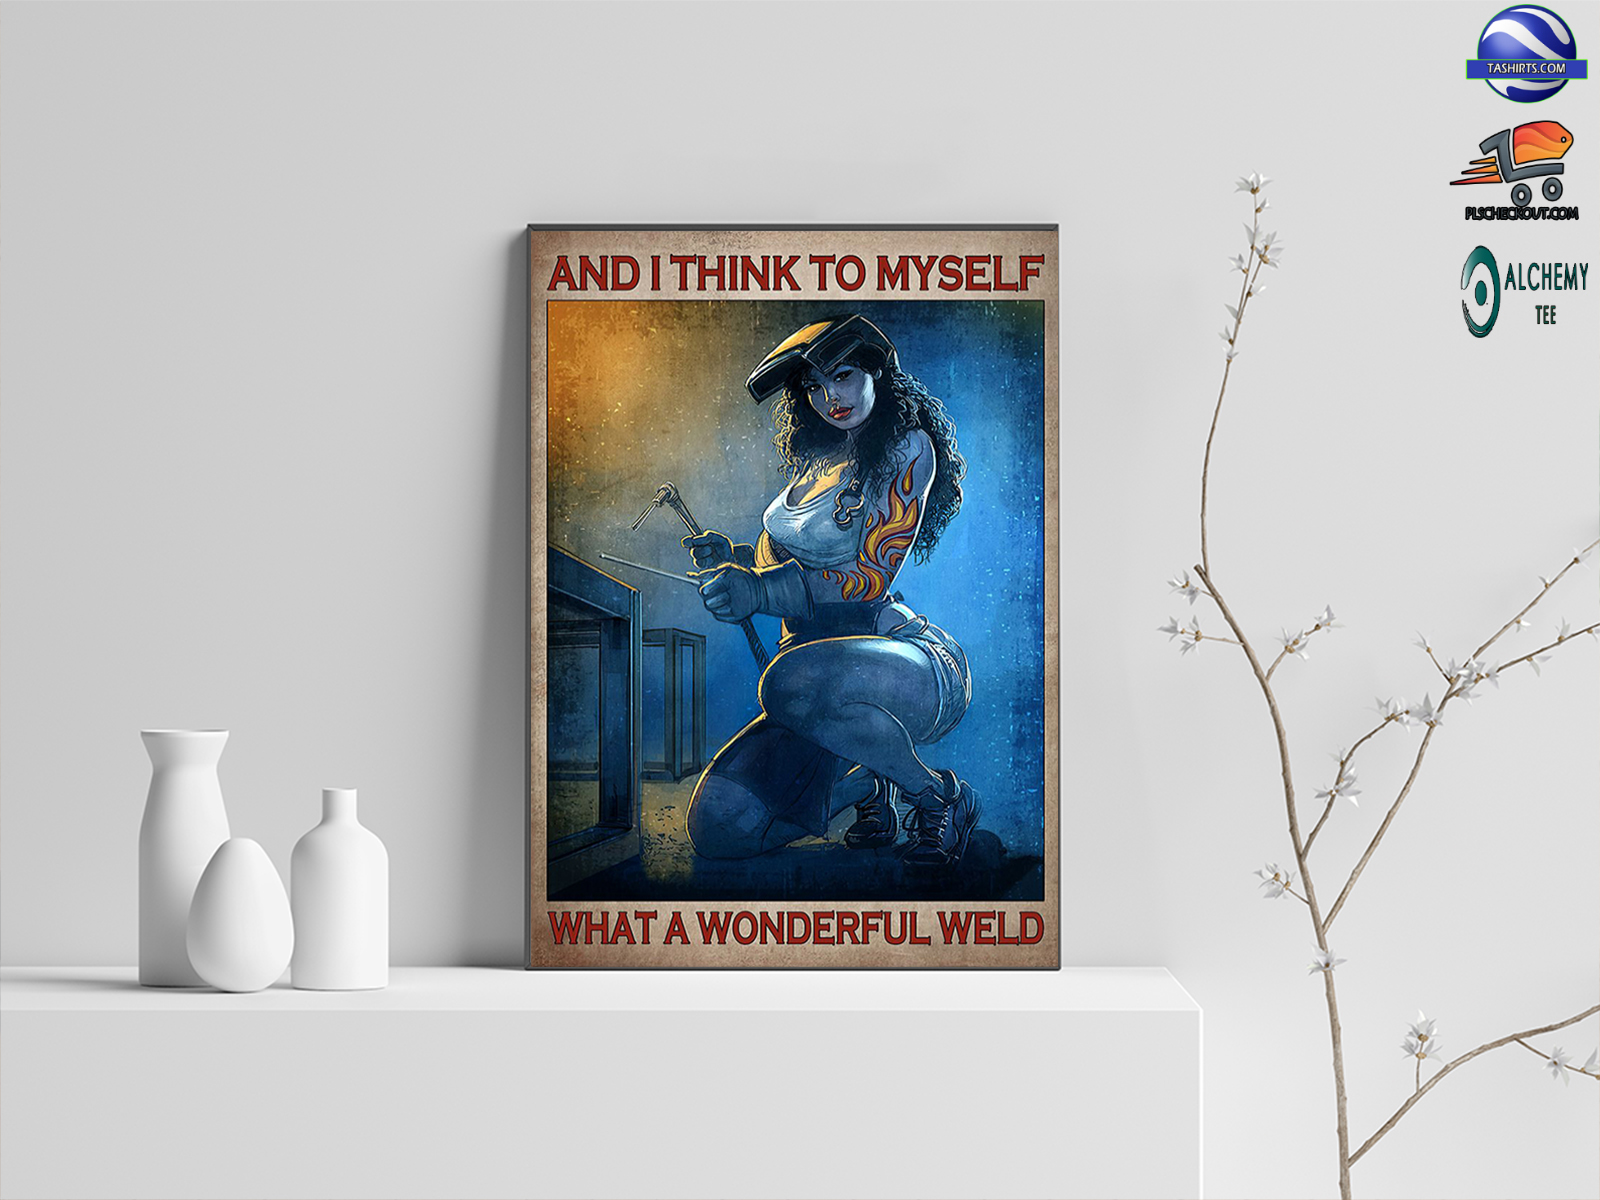 Girl And i think to myself what a wonderful weld poster